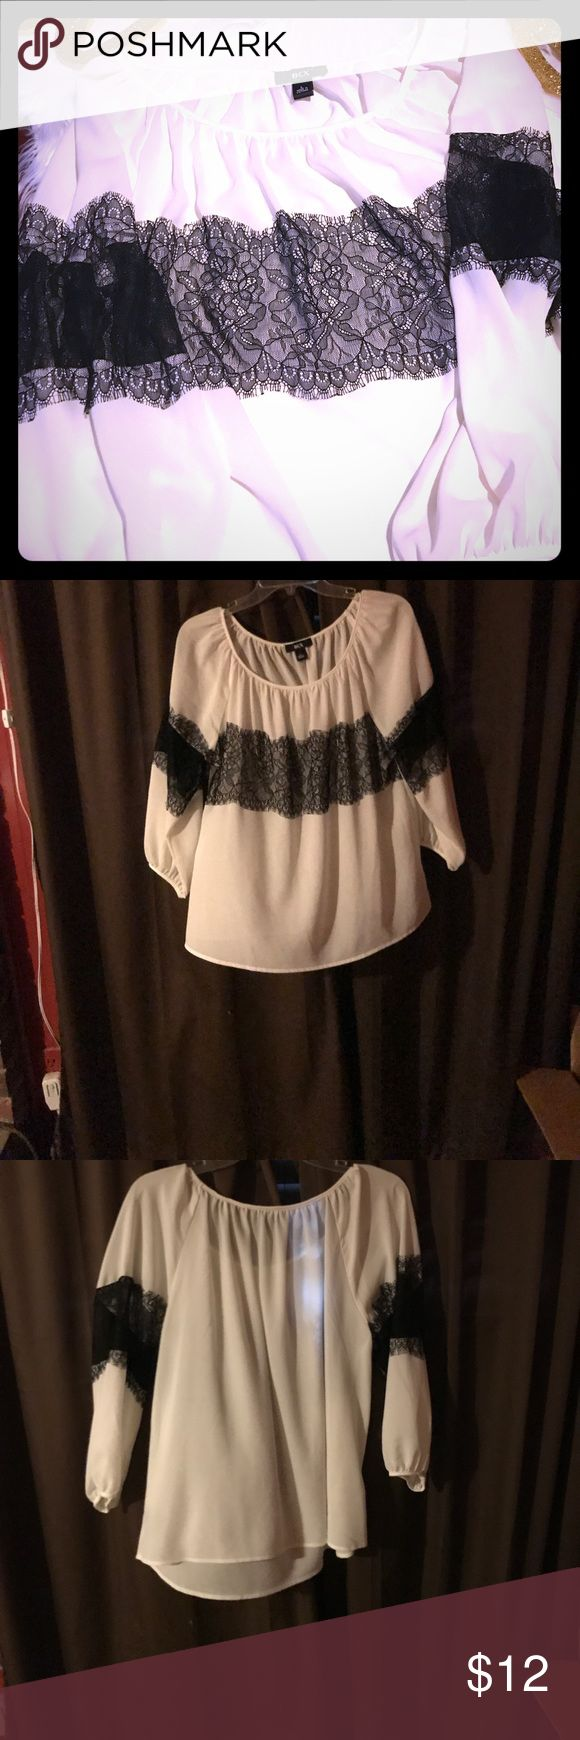 BCX white and black blouse BCX white flowing blouse accented with black lace. Purchased from Macy's. Wore once. Perfect condition. Size large BCX Tops Blouses